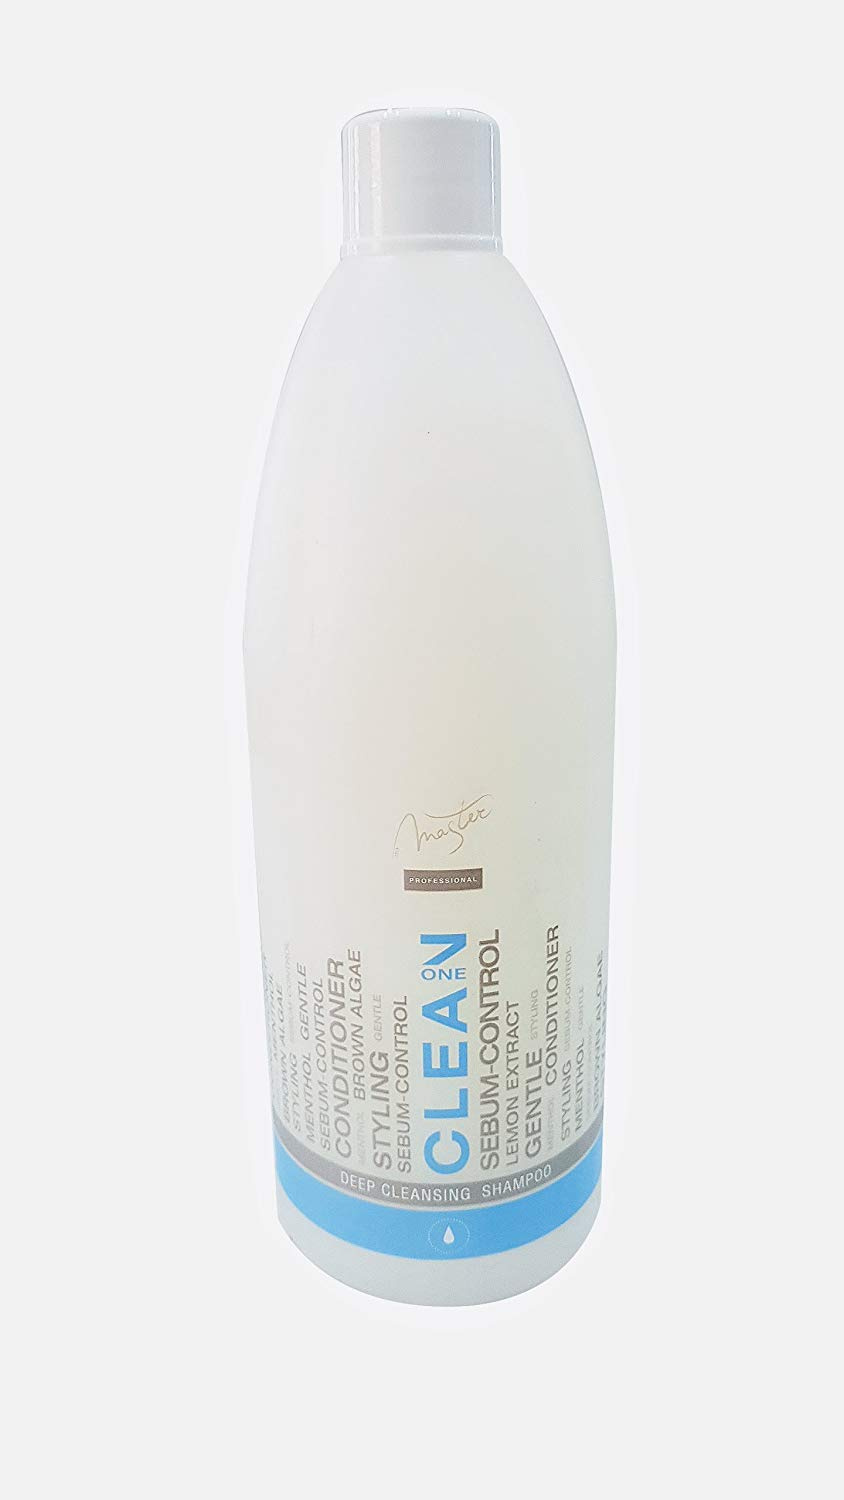 Spa Master – Professional Deep Cleansing Shampoo with Menthol, Lemon and  Seaweed, Oily Hair